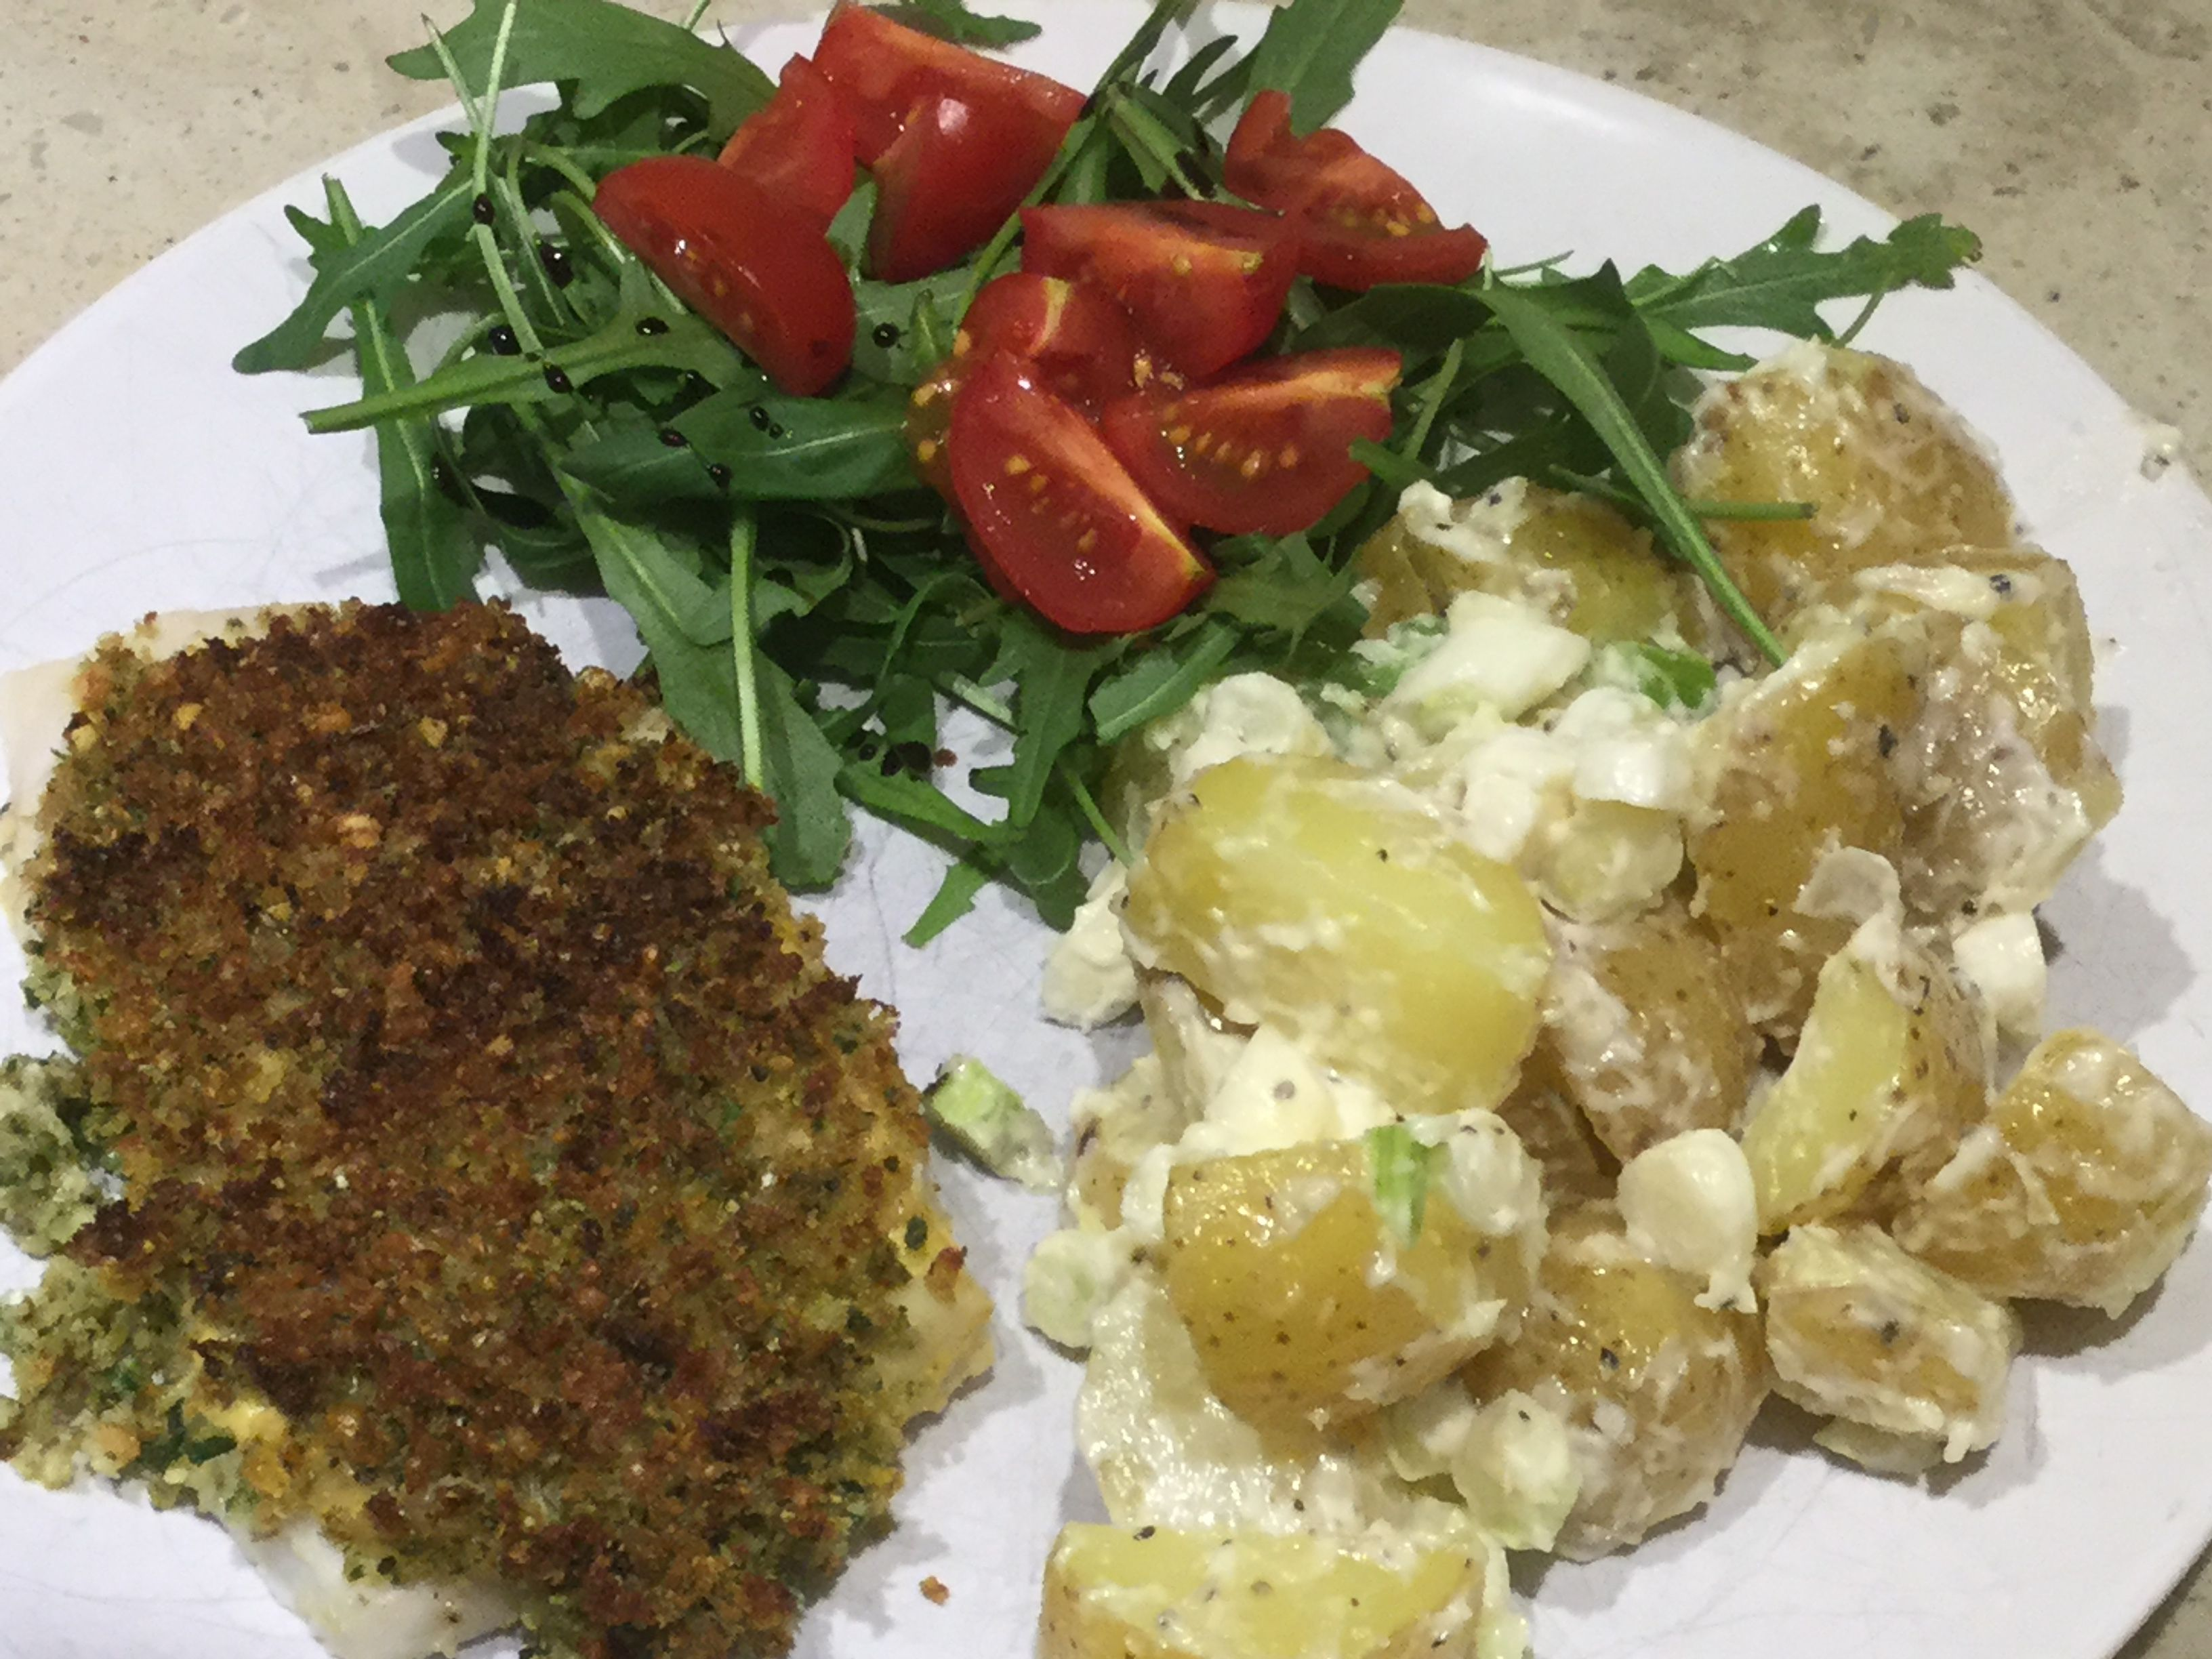 It's nearing the end of my food shopping week, so I wants to have a bit of a use up. I have some Aldi Hake Fillets in the freezer, salad to use up and salad potatoes too. I start by making a …